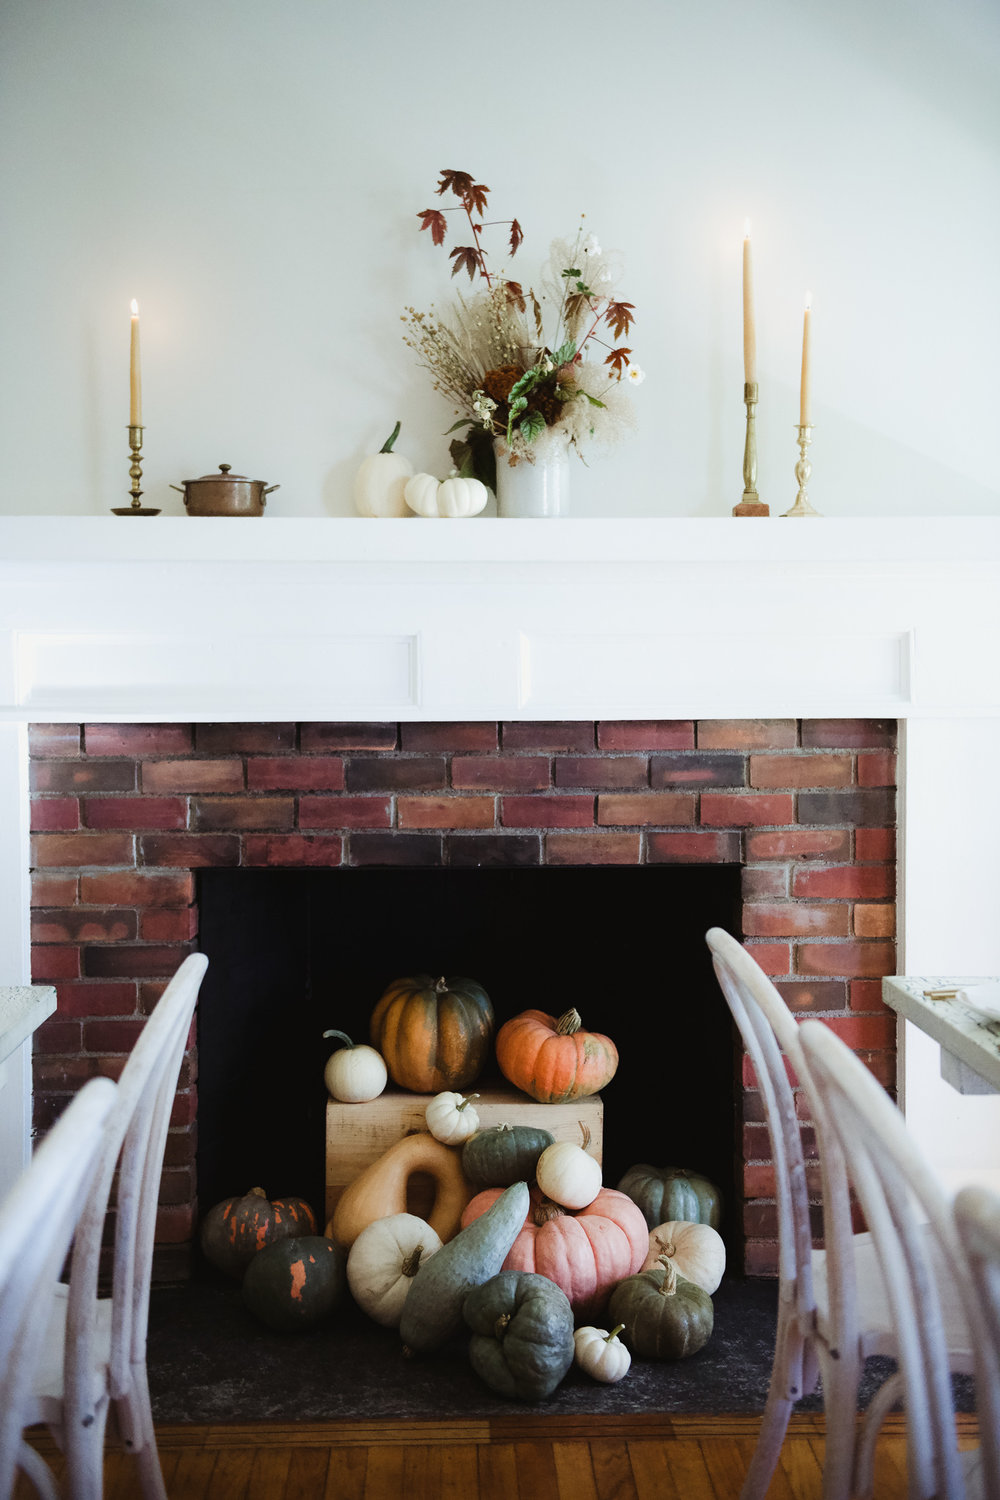 Loden Floral  utilized locally sourced heirloom pumpkins and gourds as festive decor in the farmhouse fireplace.